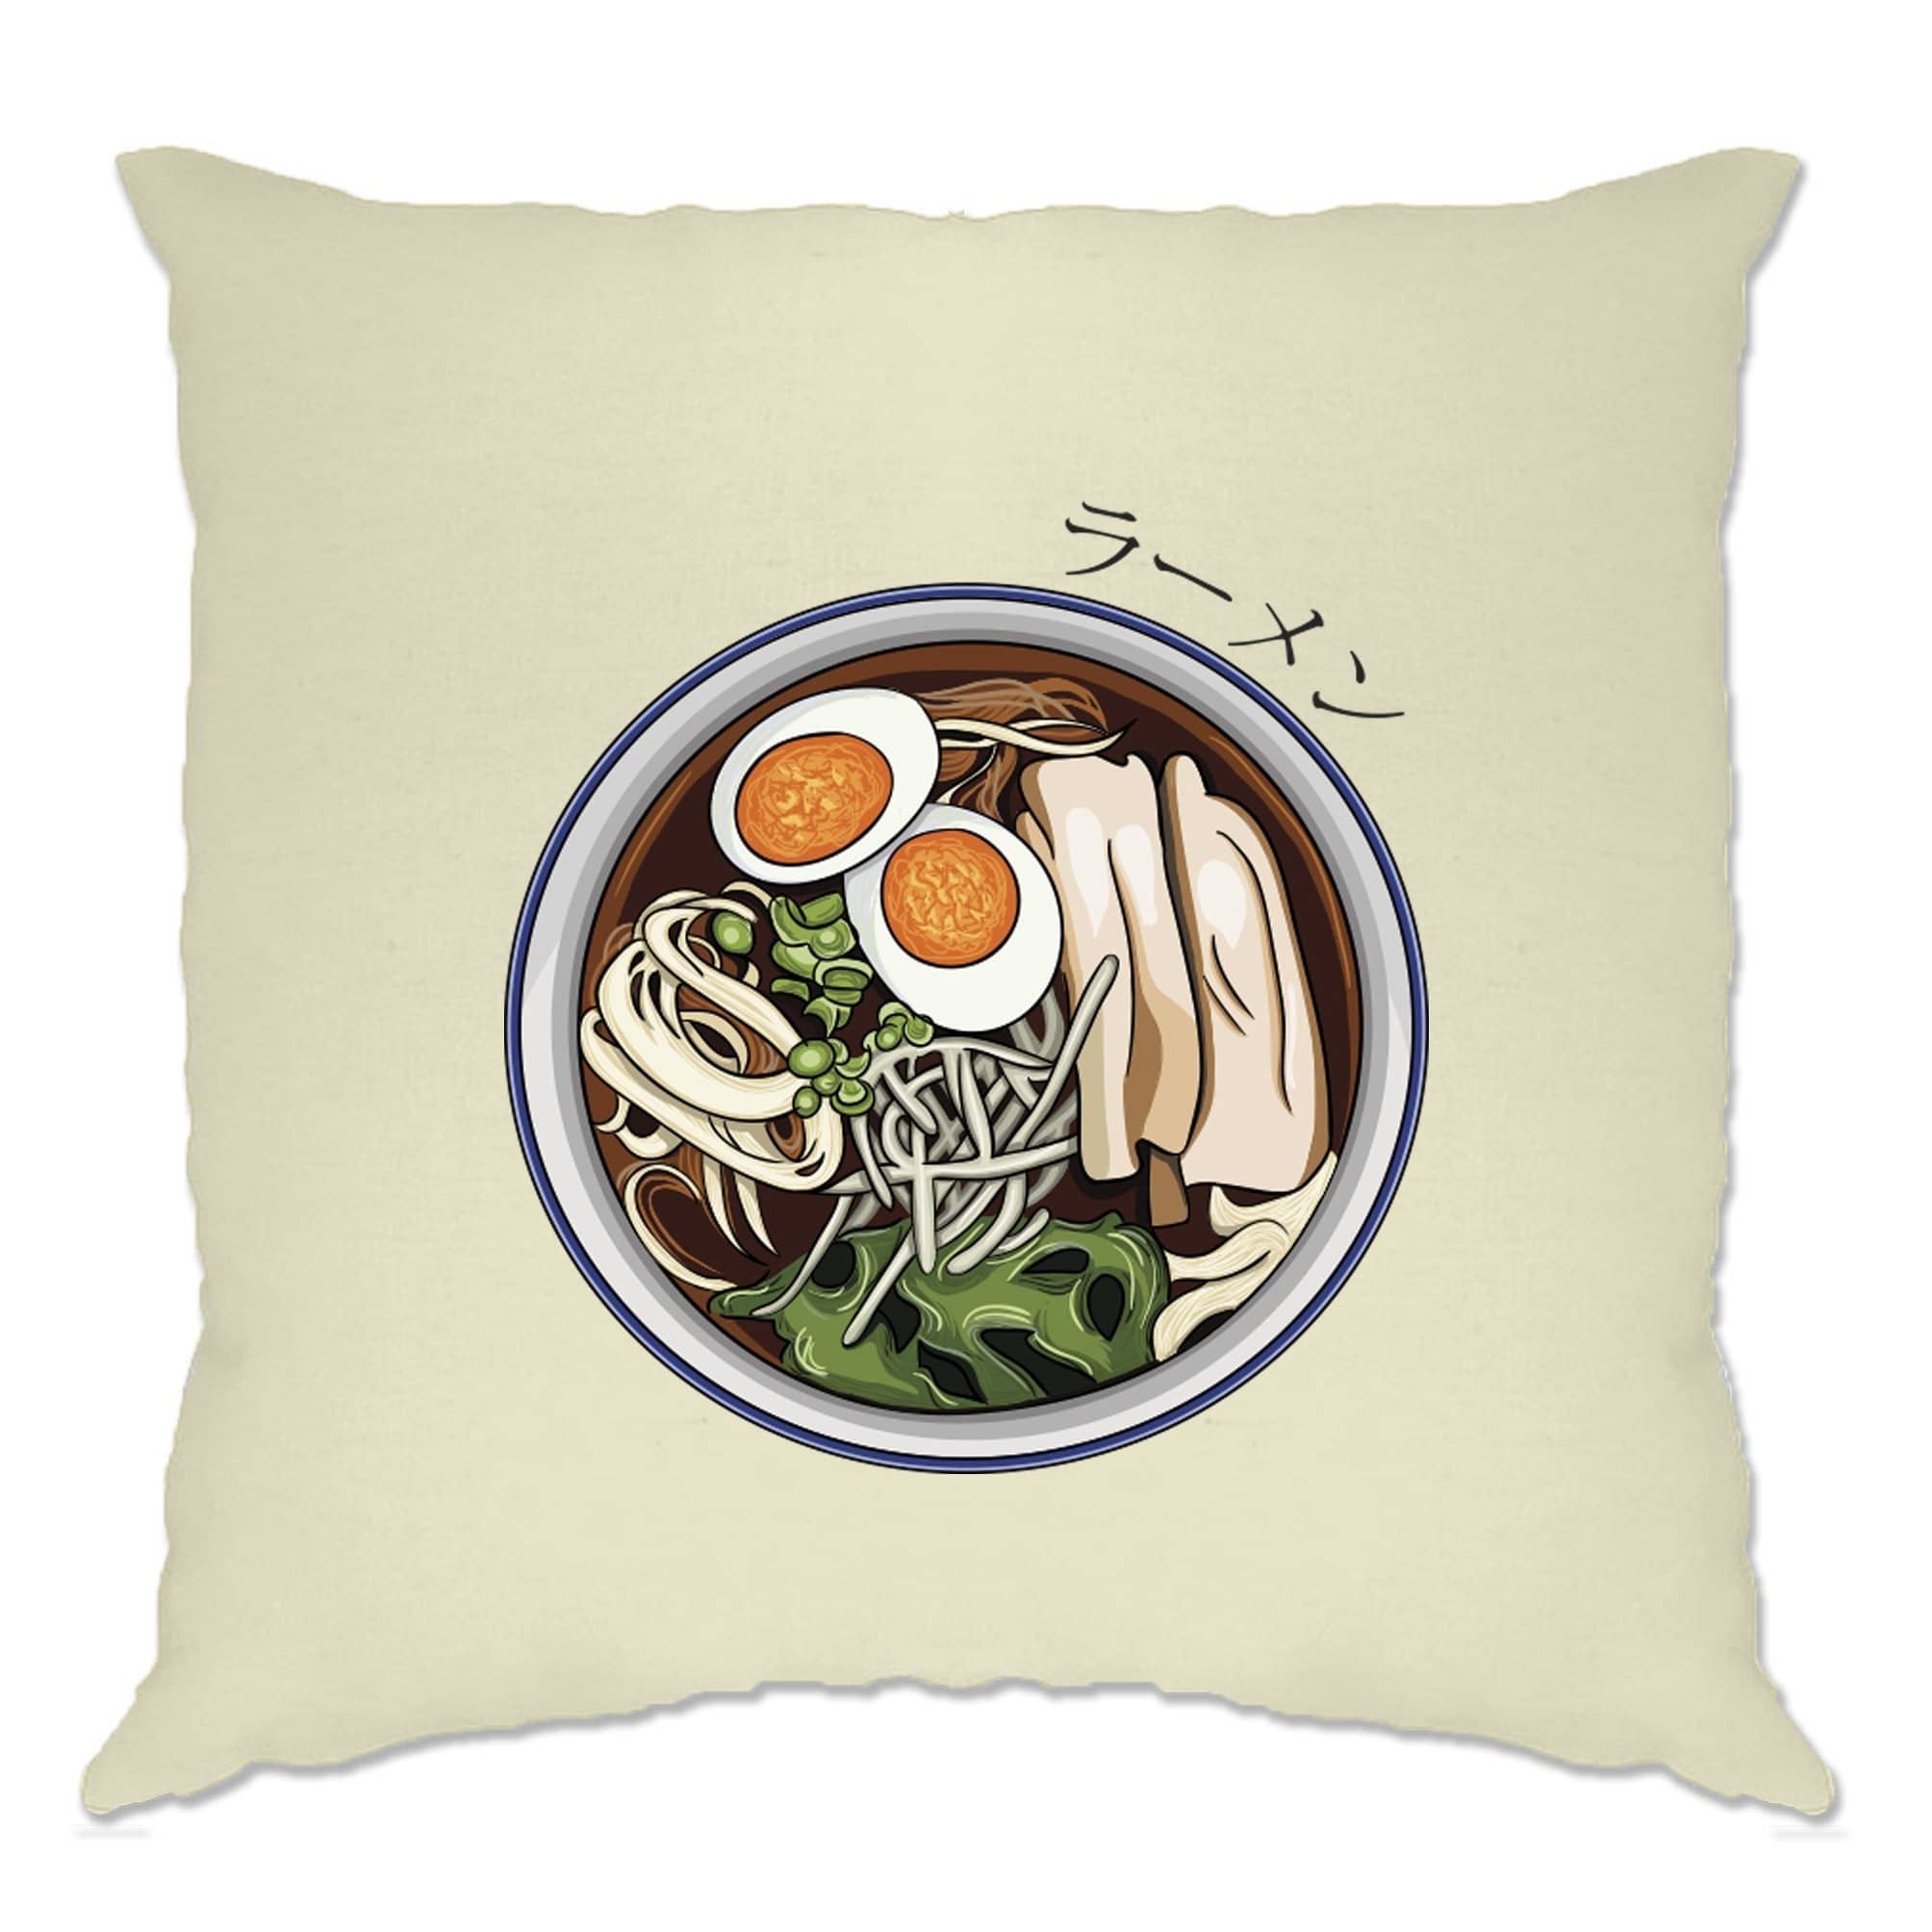 Ethnic Food Cushion Cover Ramen Noodles And Japanese Text